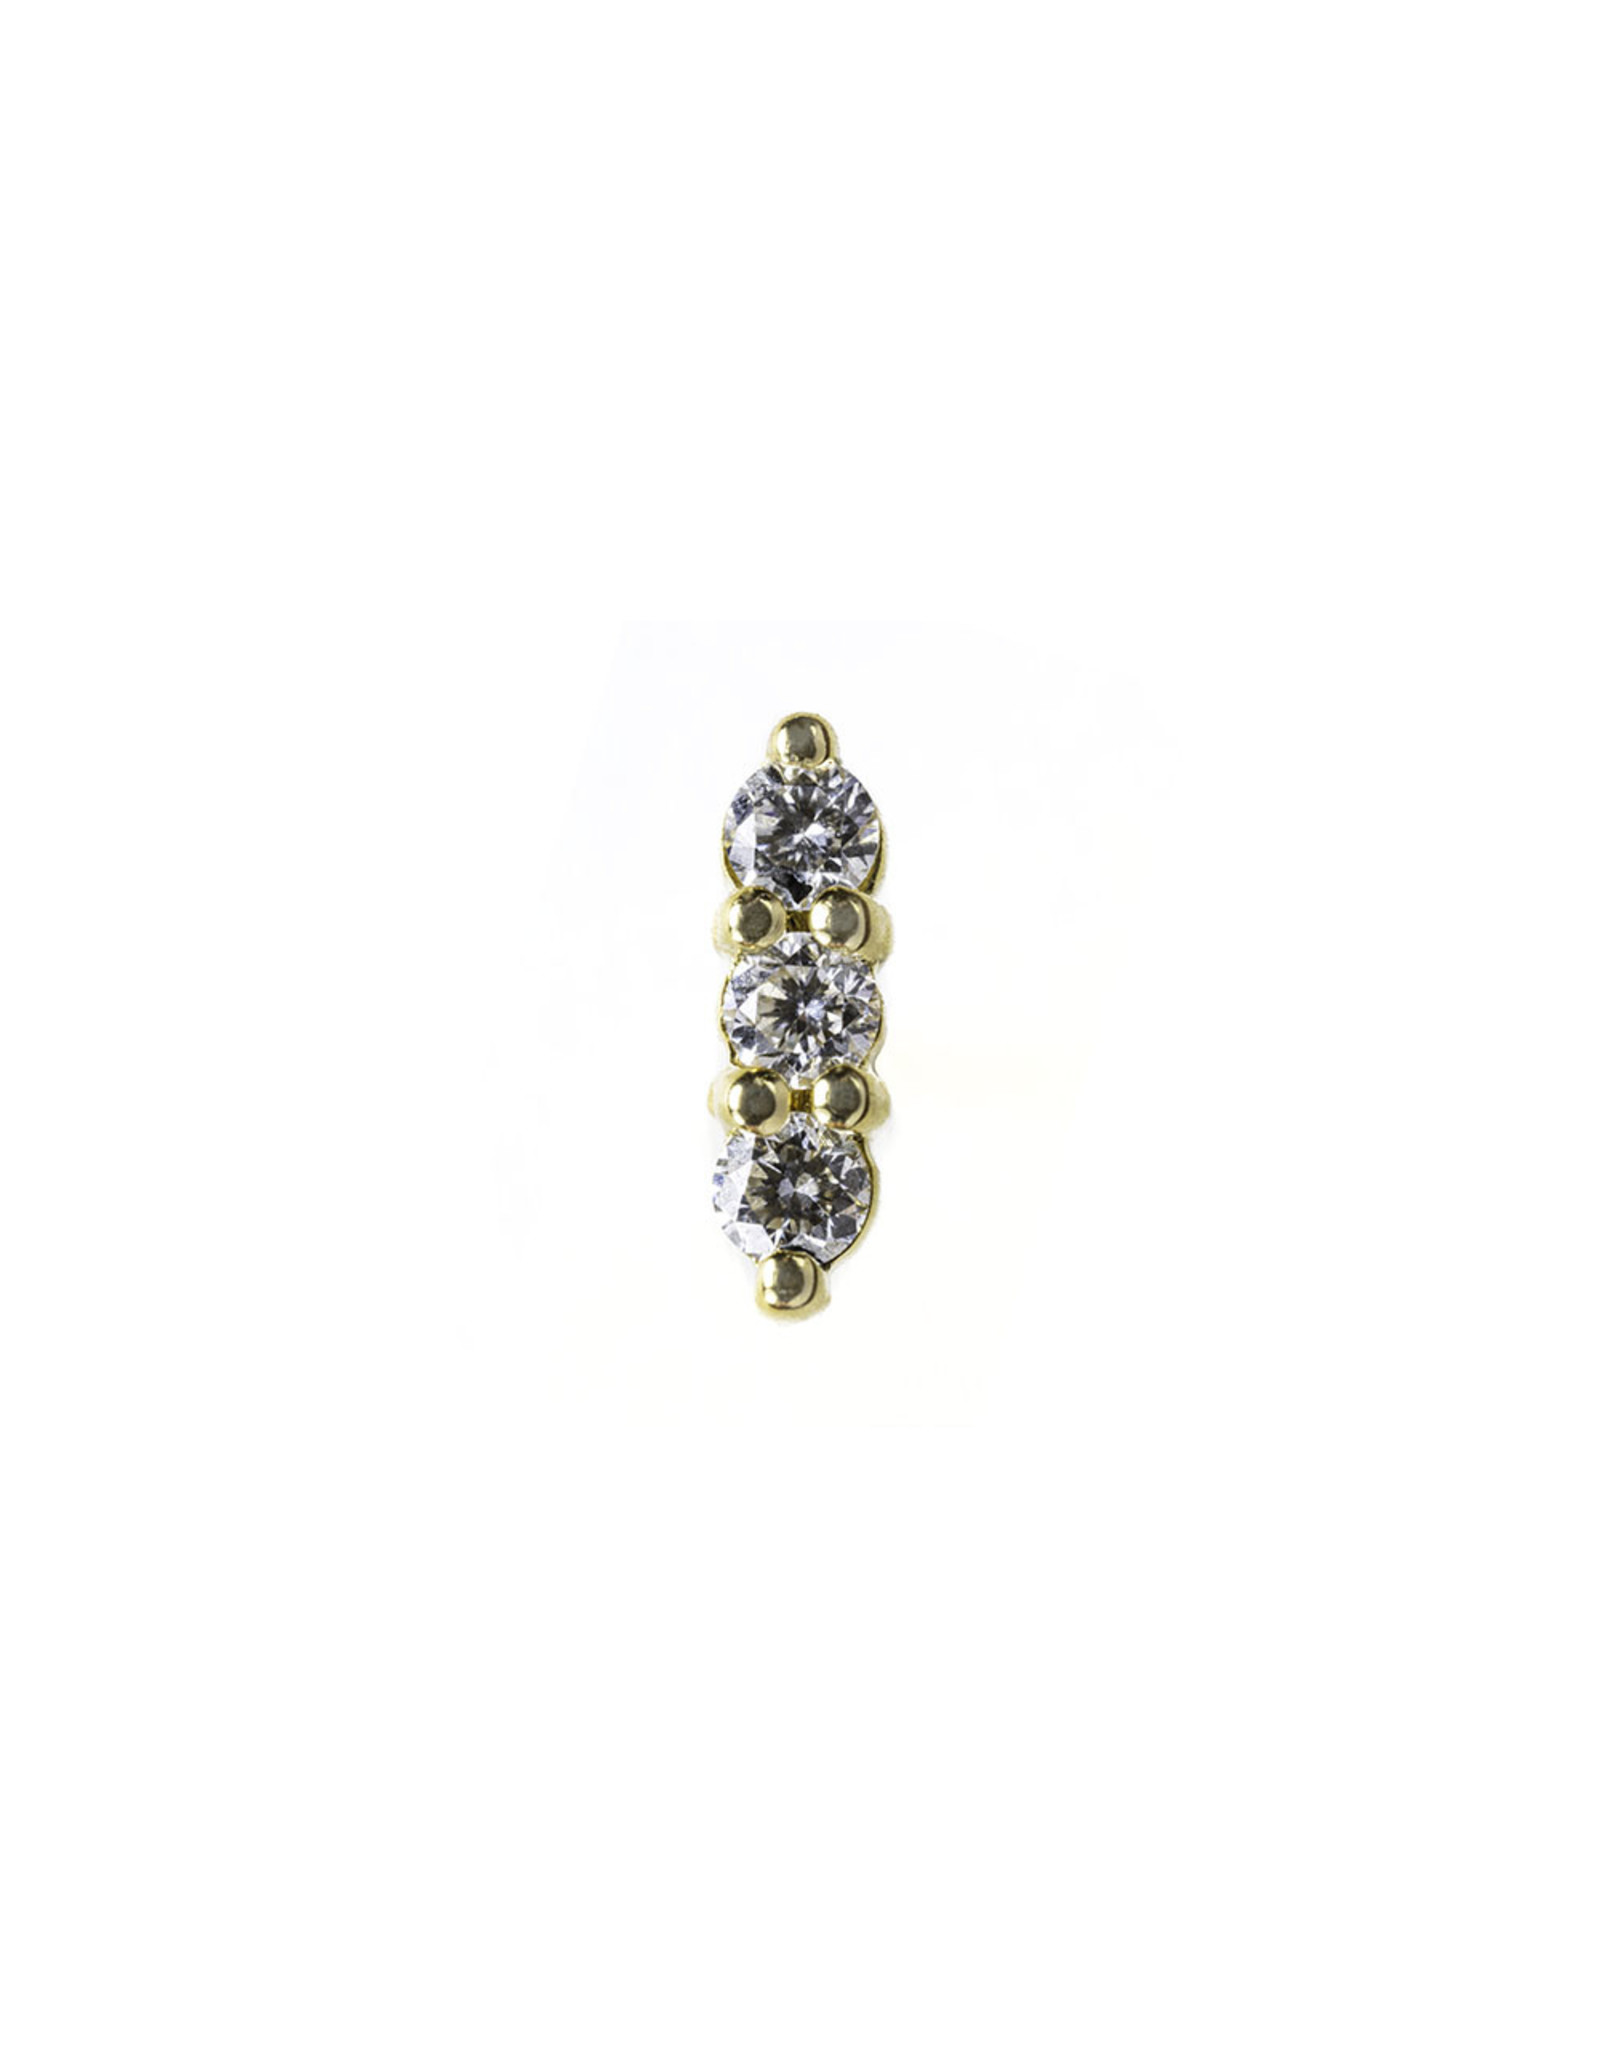 BVLA BVLA yellow gold linear tri prong cluster press fit end with 3x 1.5 VS 1 diamond